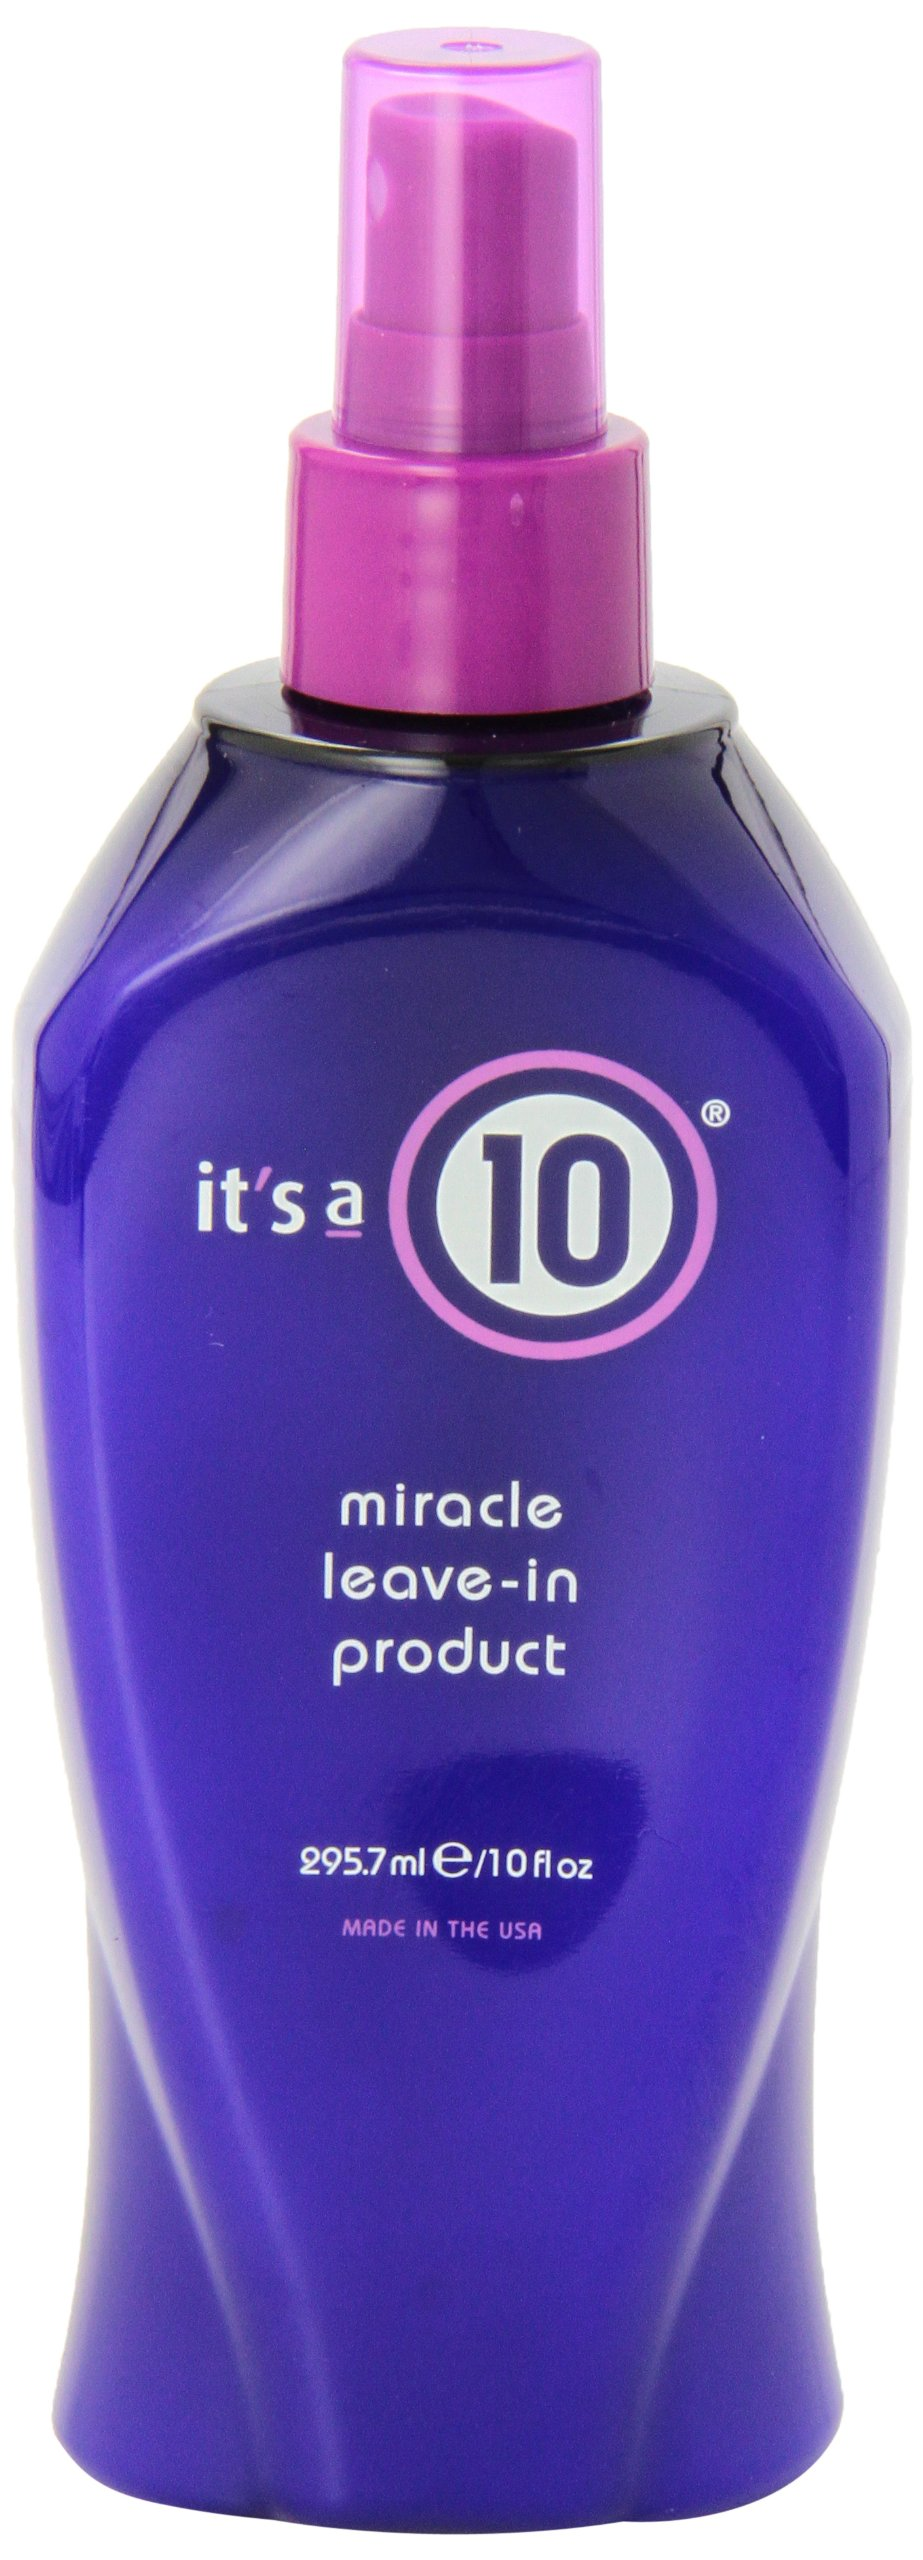 it's a 10 Miracle Leave-In product 10 oz by It's a 10 Haircare (Image #4)